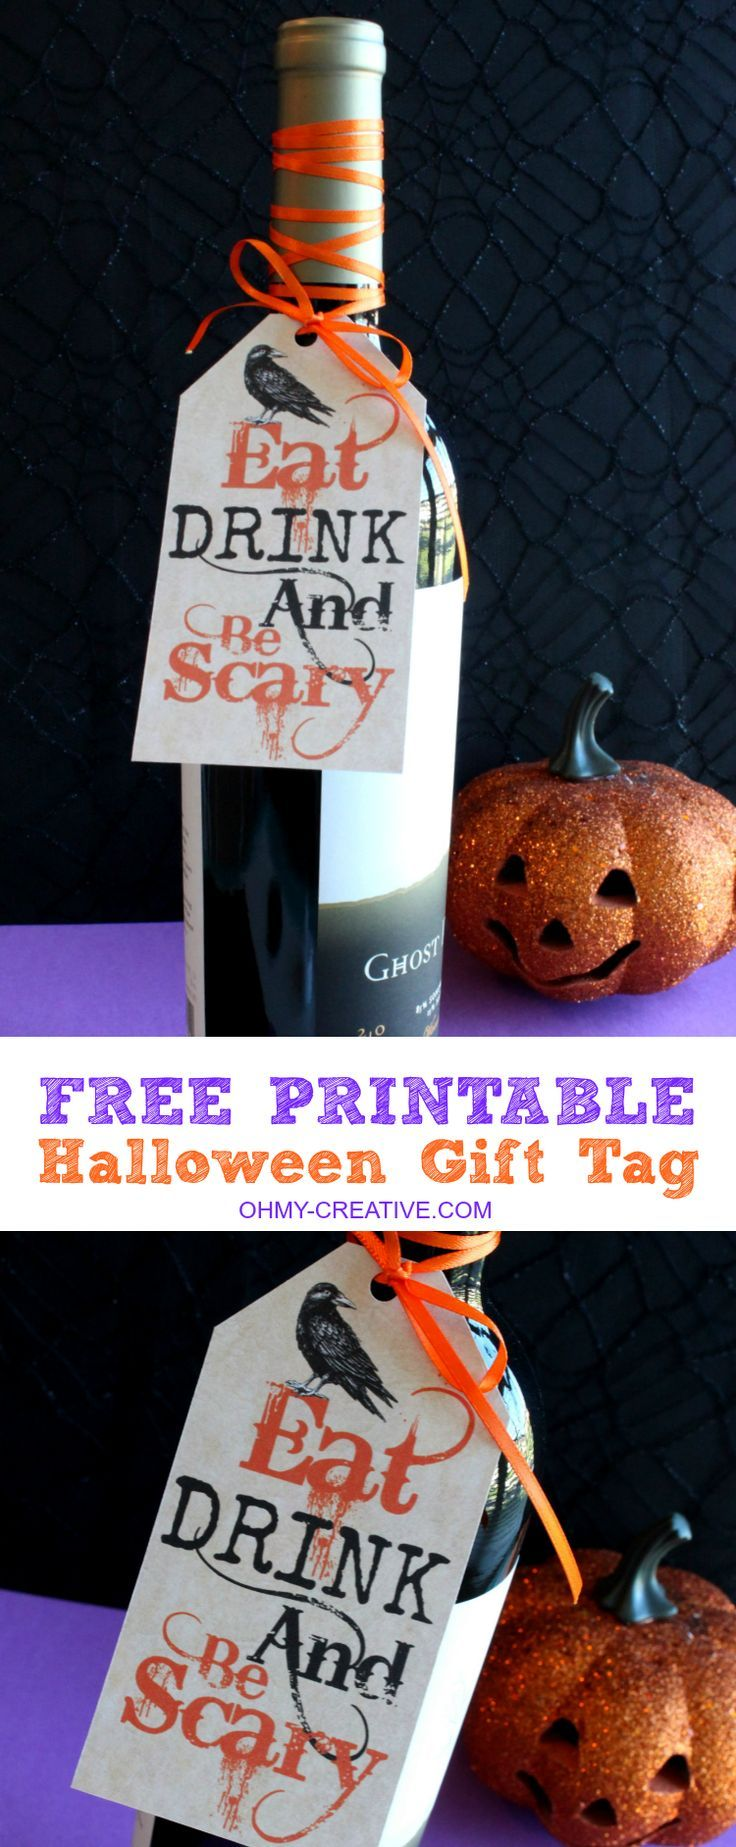 A perfect Halloween hostess gift - Head off to the Halloween Party with this Eat Drink and be Scary Free Printable Halloween Gift Tag attached to the bottle of wine, gift bag or yummy Halloween treat! | http://OHMY-CREATIVE.COM